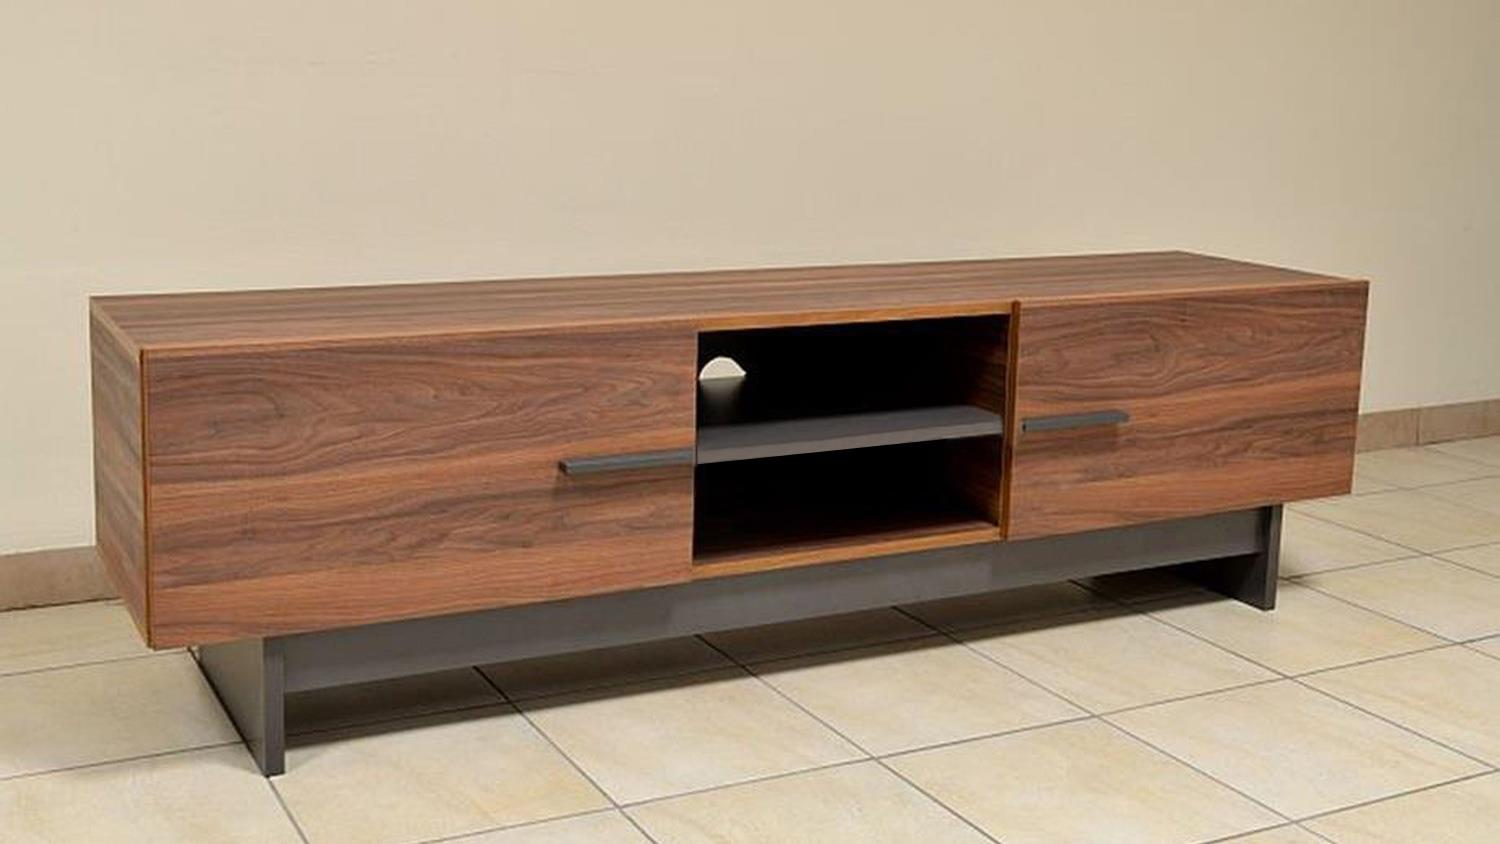 lowboard tv board sala hifi tv schrank in nussbaum 180 cm breit. Black Bedroom Furniture Sets. Home Design Ideas